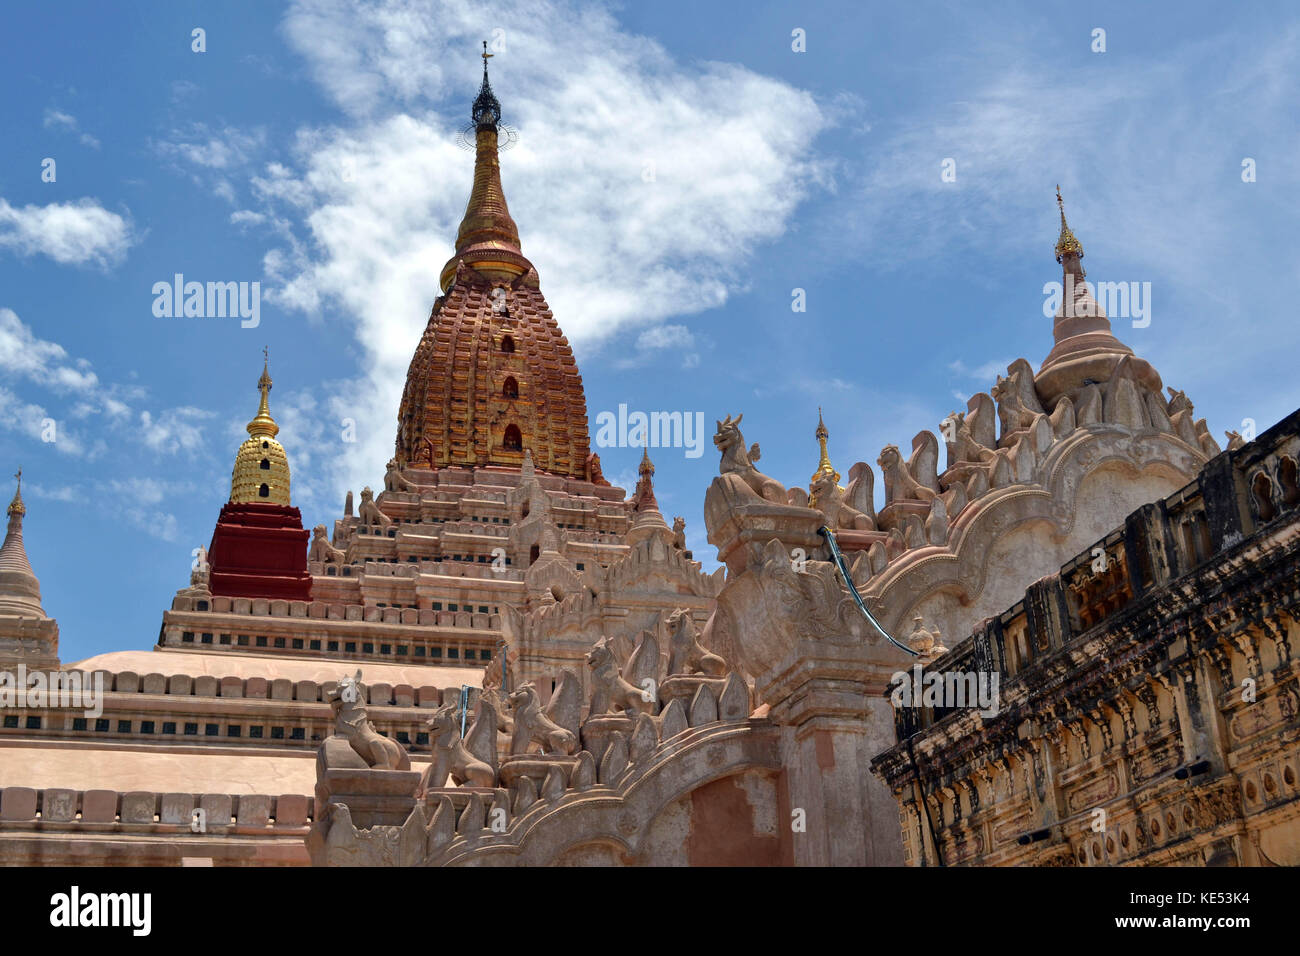 Arguably the most beautiful temple in Bagan, Myanmar. It's Ananda Temple. Pic was taken in August 2015. - Stock Image